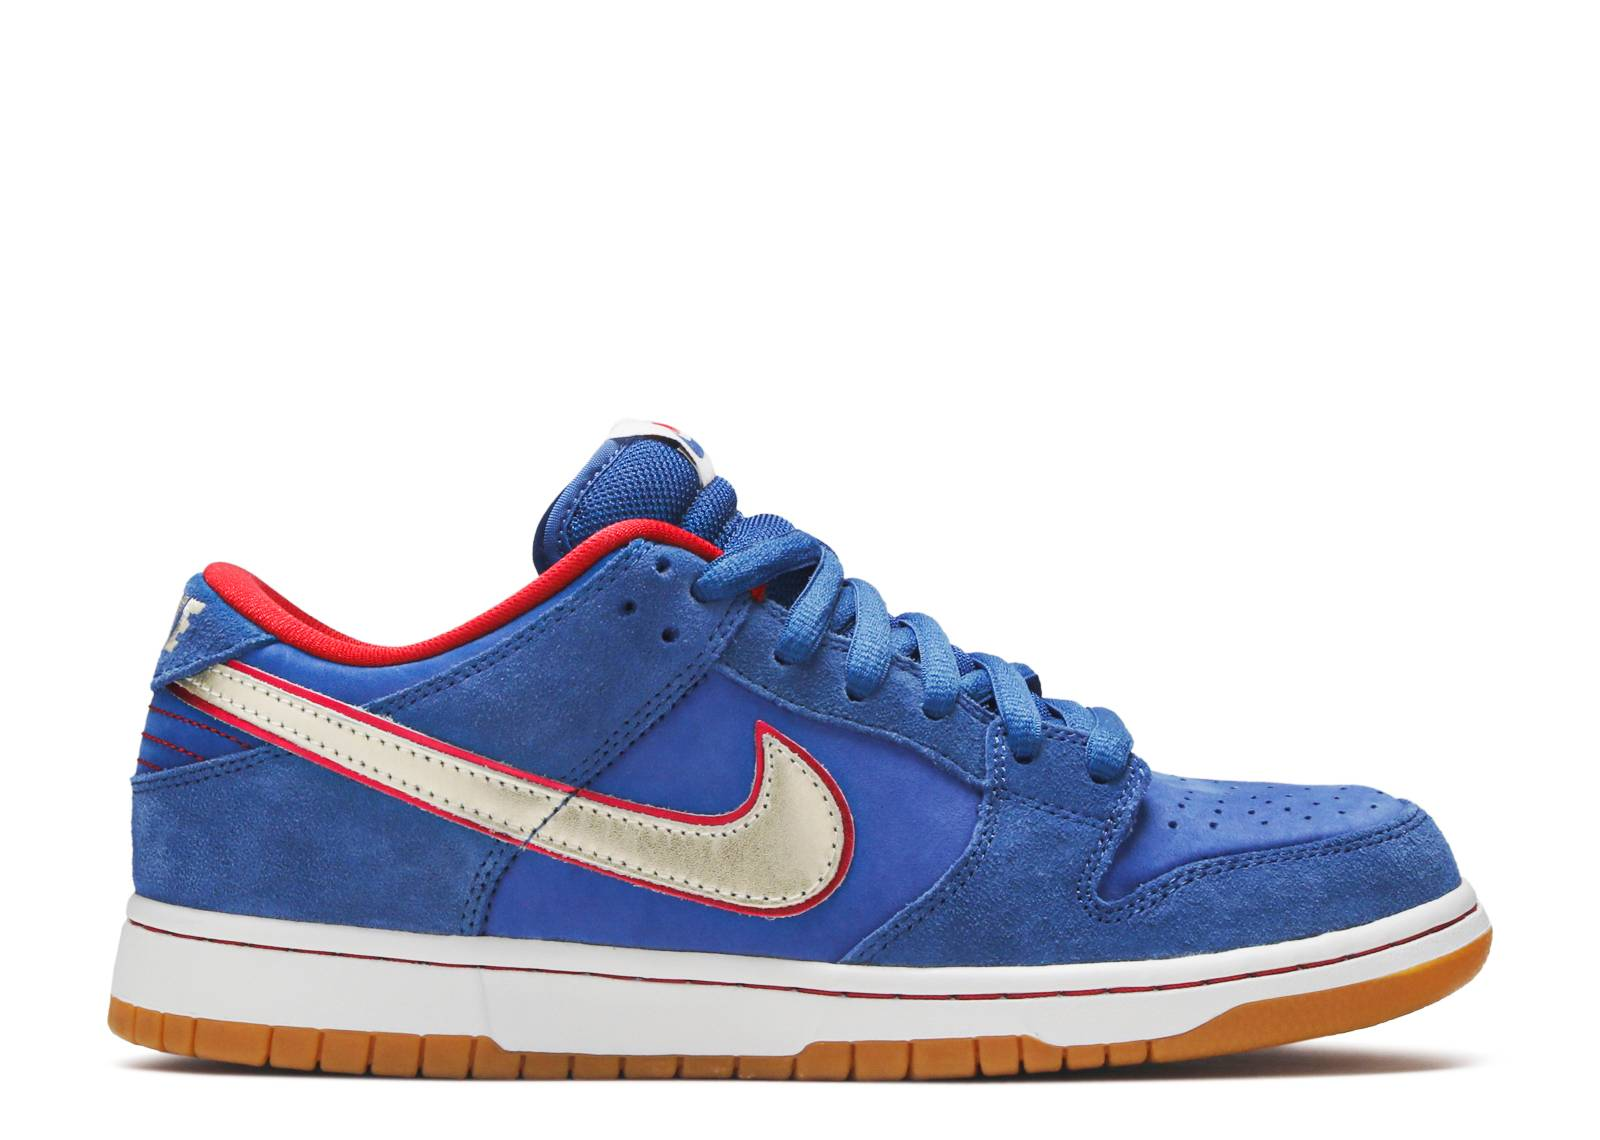 9e000fd85b2f Dunk Low - Nike Dunks - Nike